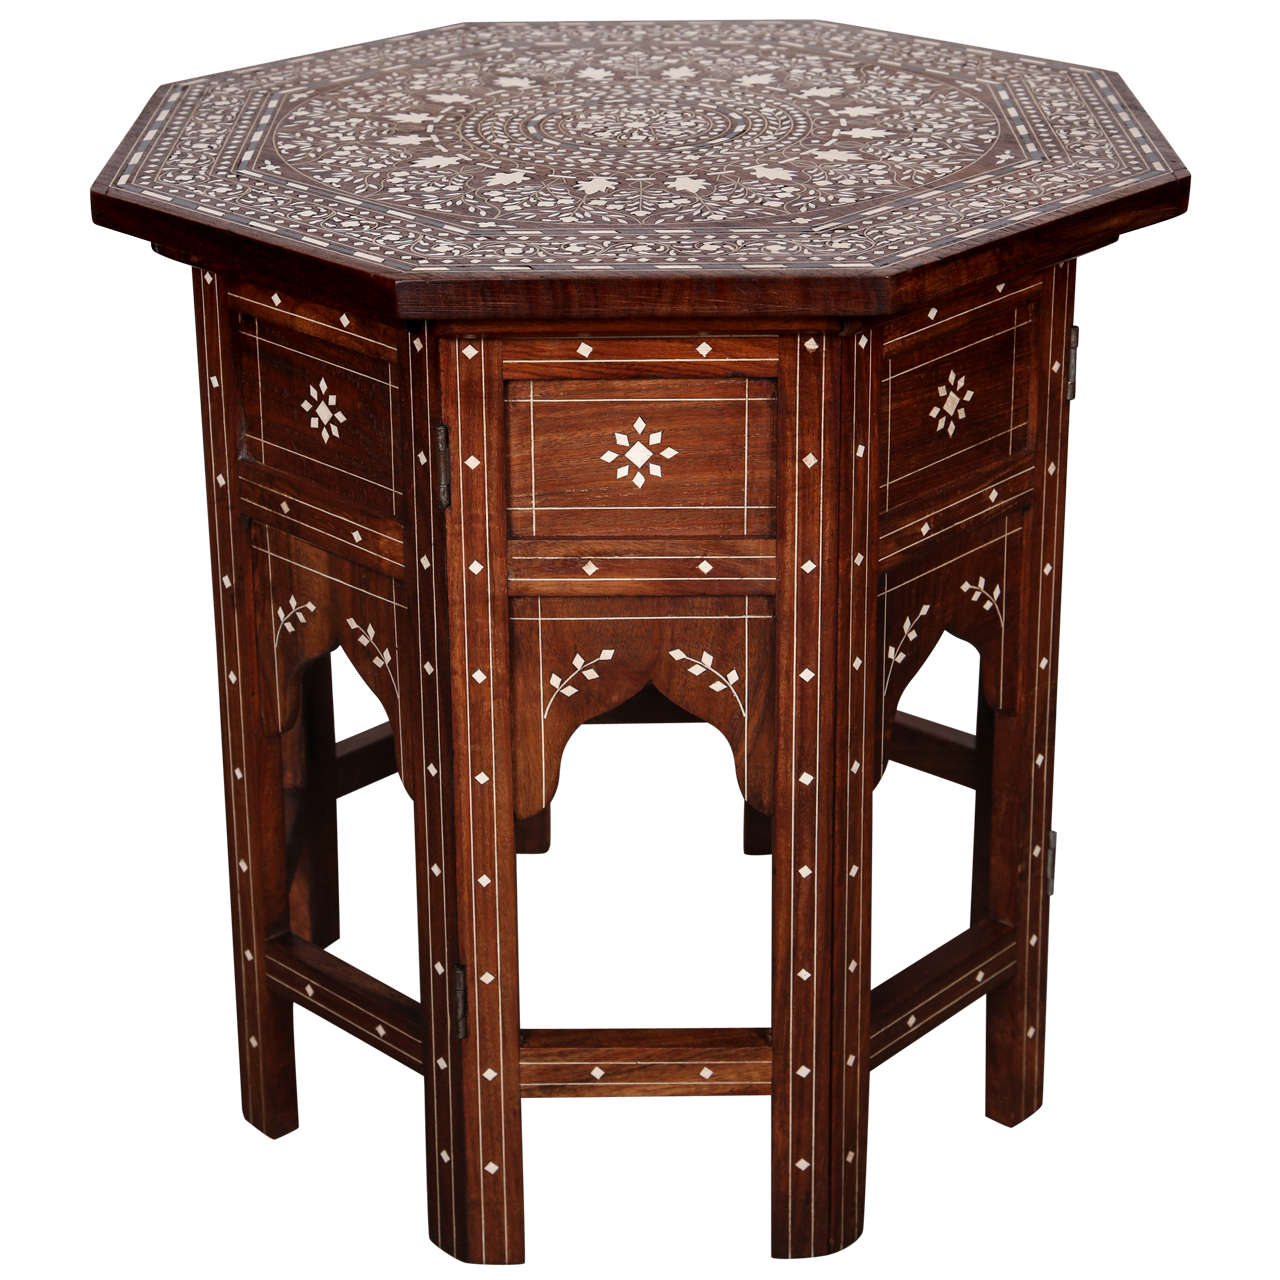 Anglo Indian Folding Rosewood Ivory Inlaid Octagonal Side Table. 1